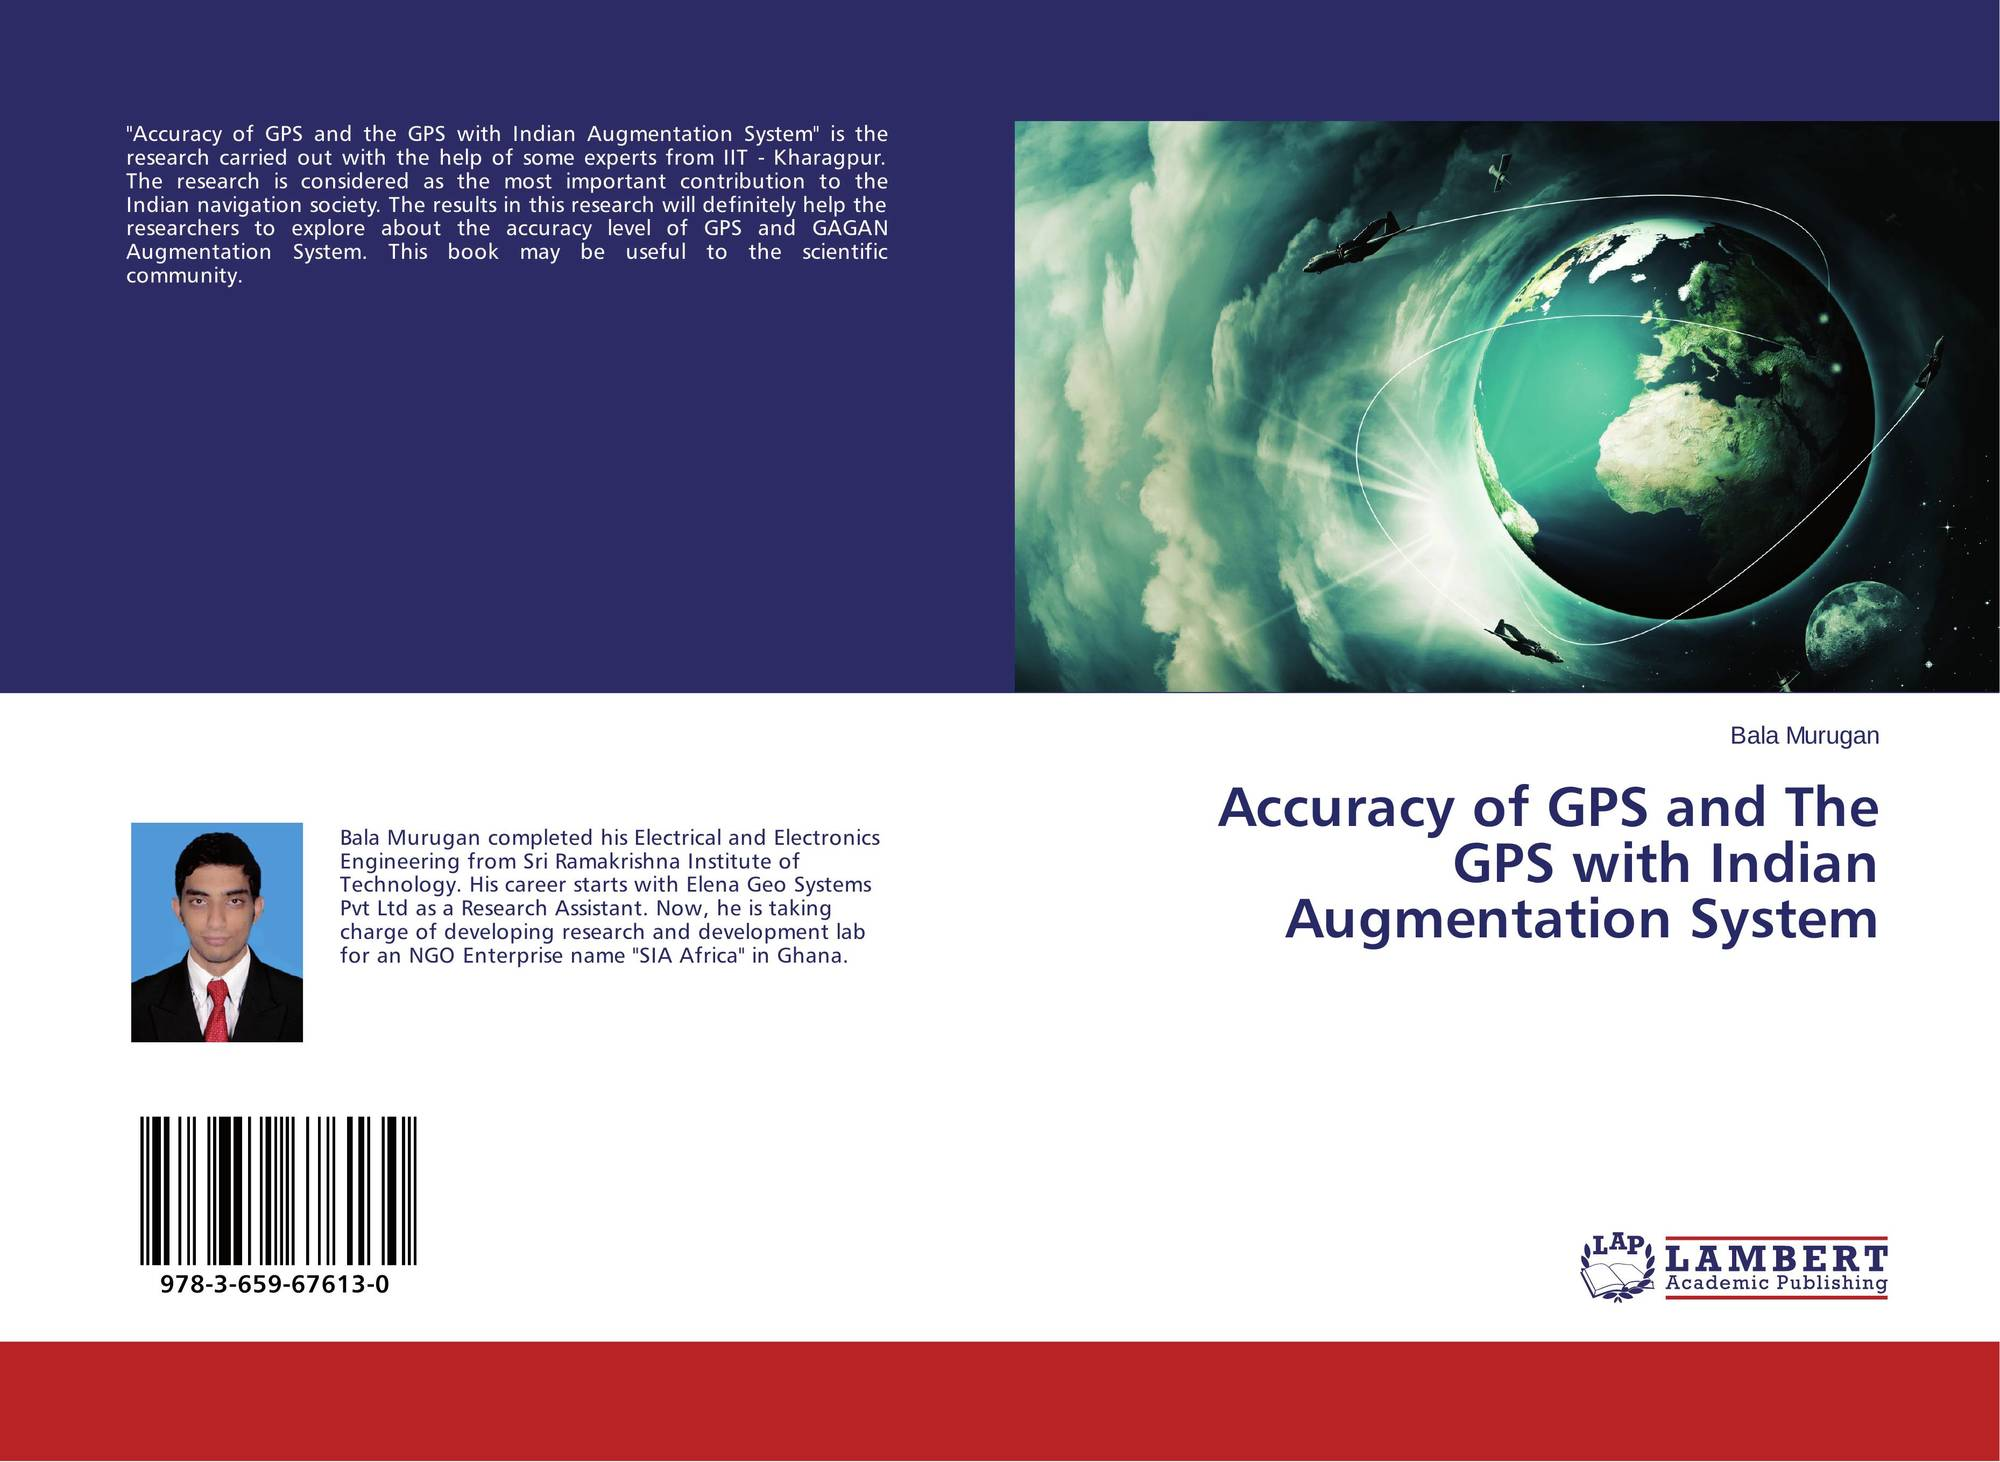 Accuracy of GPS and The GPS with Indian Augmentation System, 978-3